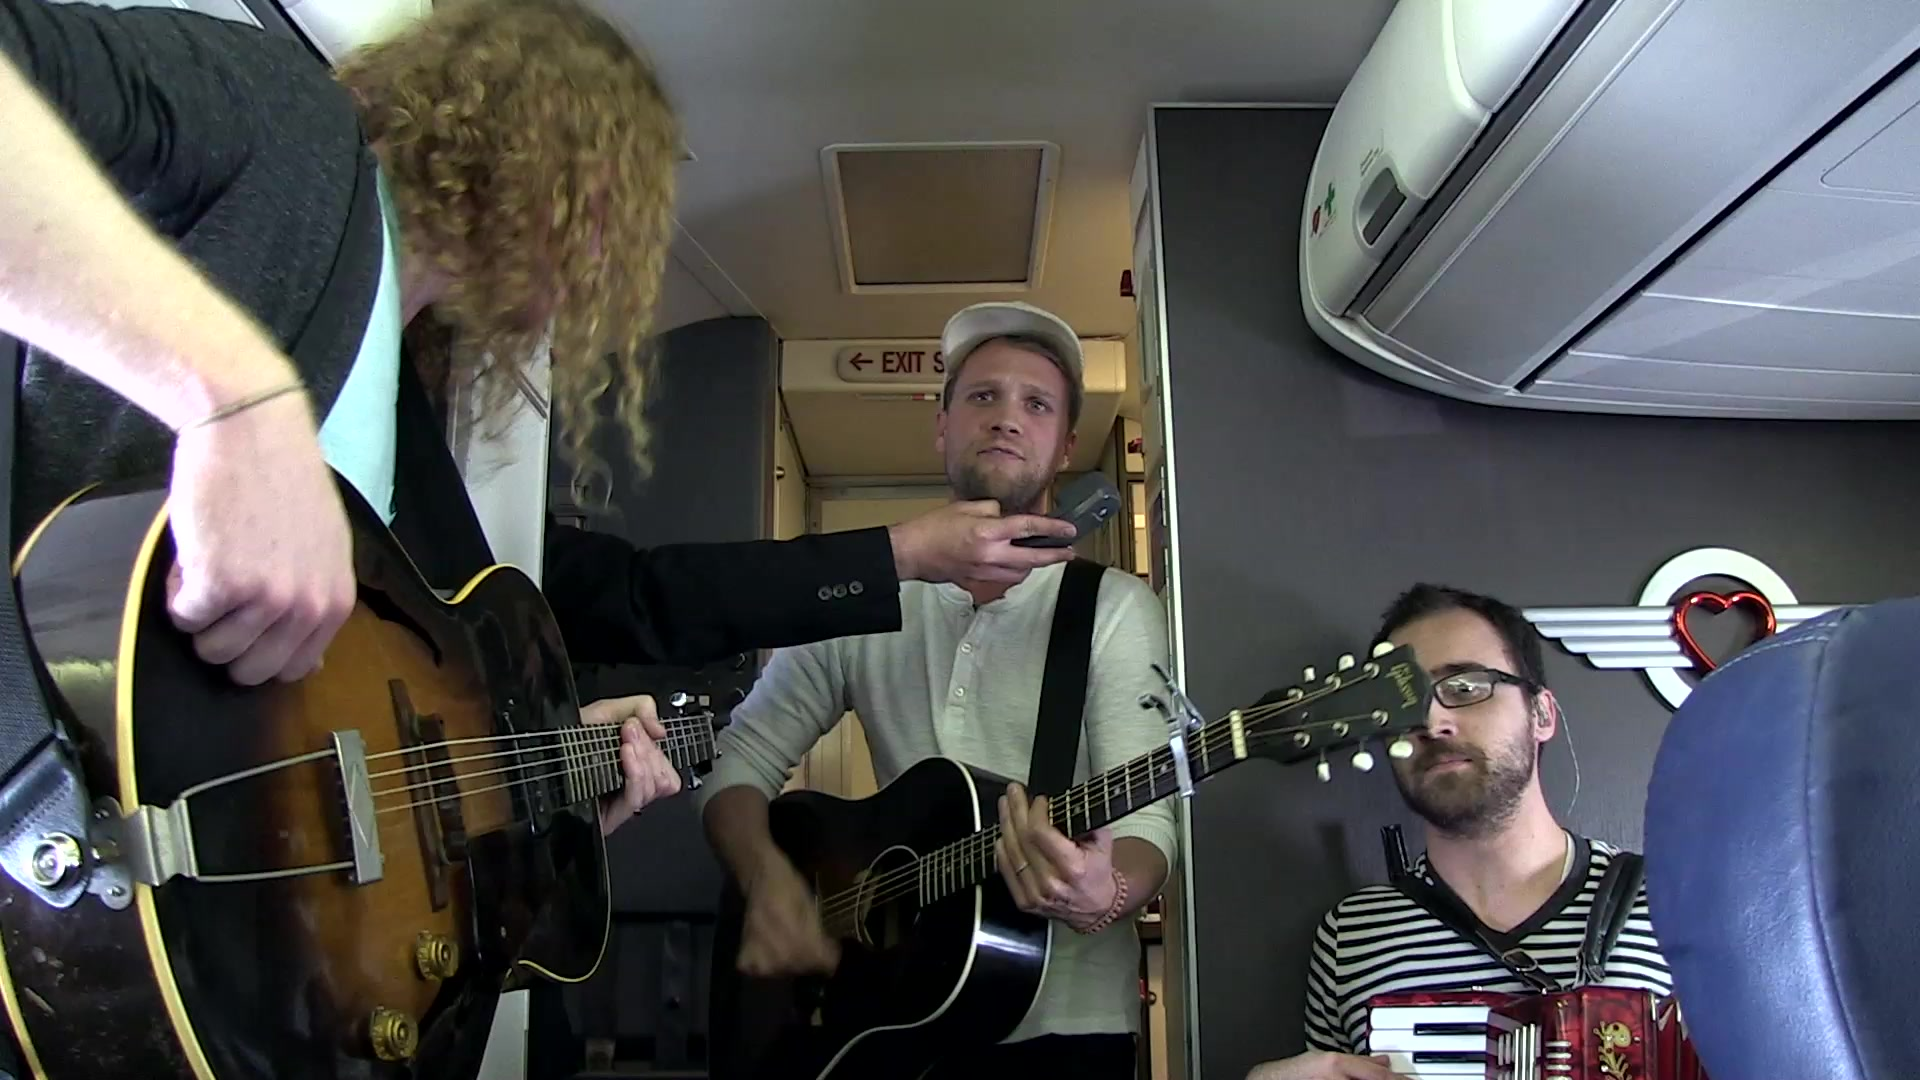 Southwest Airlines Live@35 Inflight Concert by artist Andrew Ripp aboard a Burbank to Oakland flight